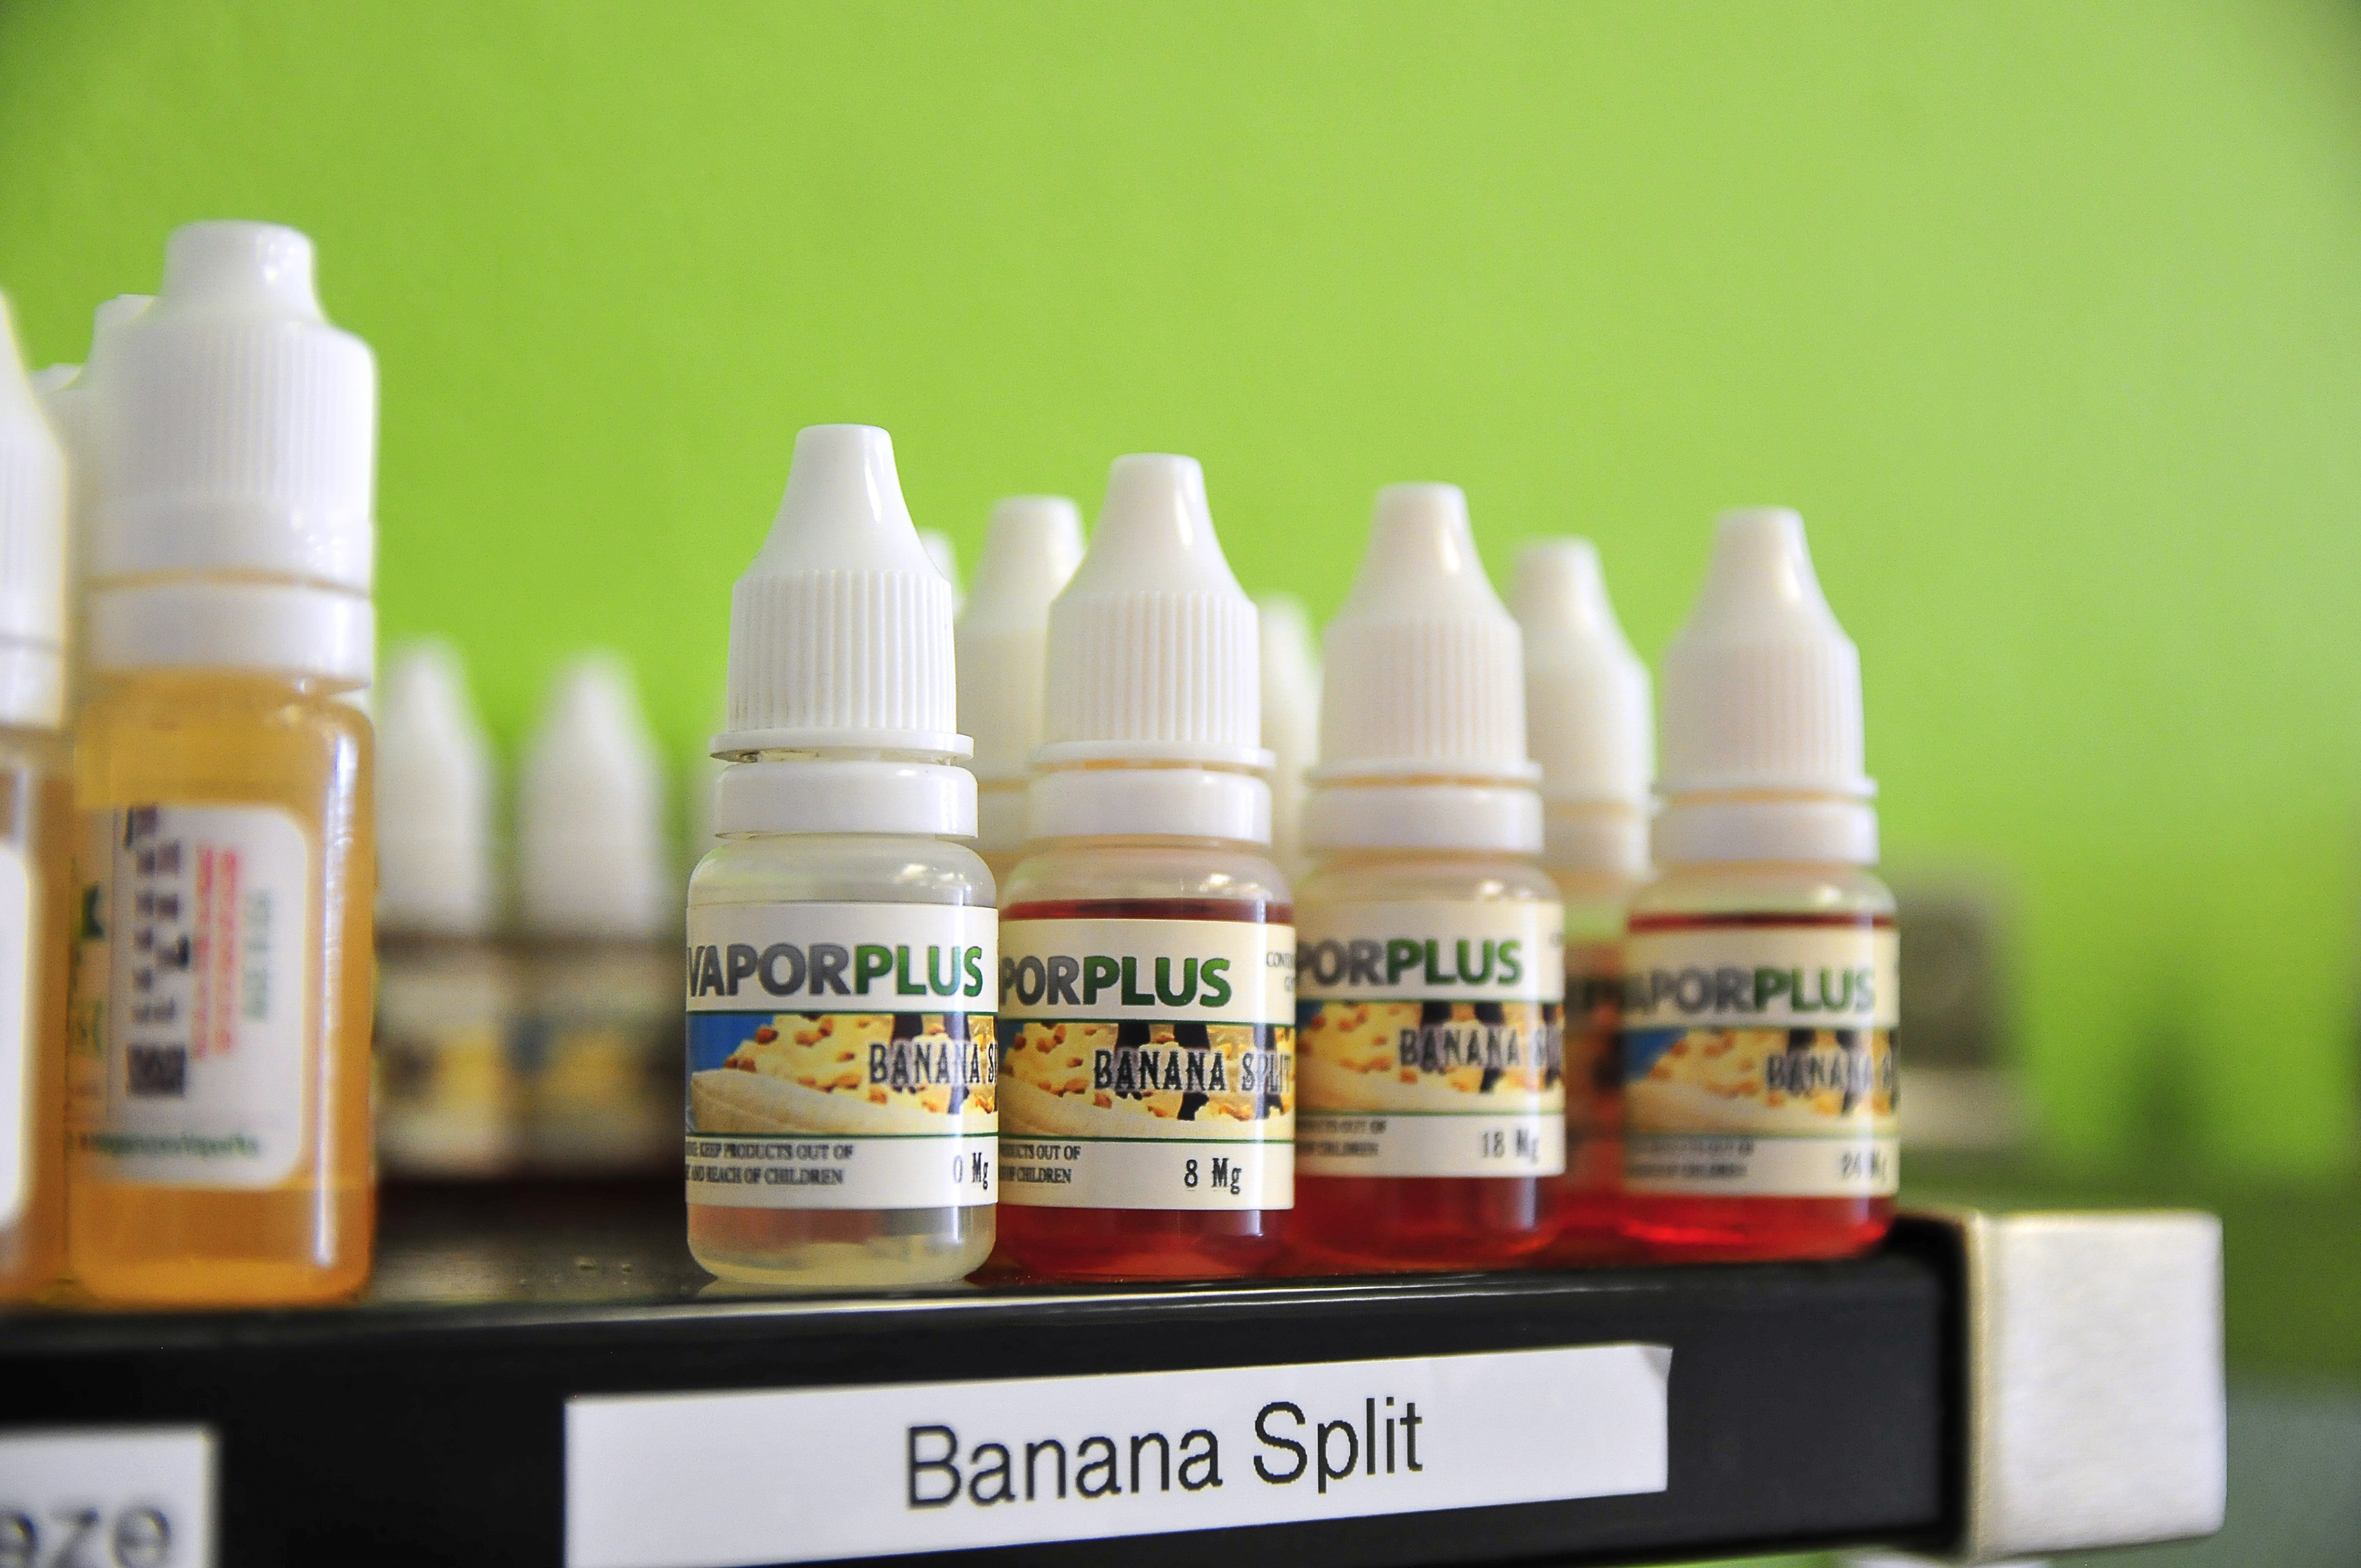 Banana Split is one of the best-selling flavors at Vapor Plus, an e-cigarette shop in Oklahoma City. Such flavors have been banned in regular cigarettes out of concerns they would tempt youngsters to smoke.